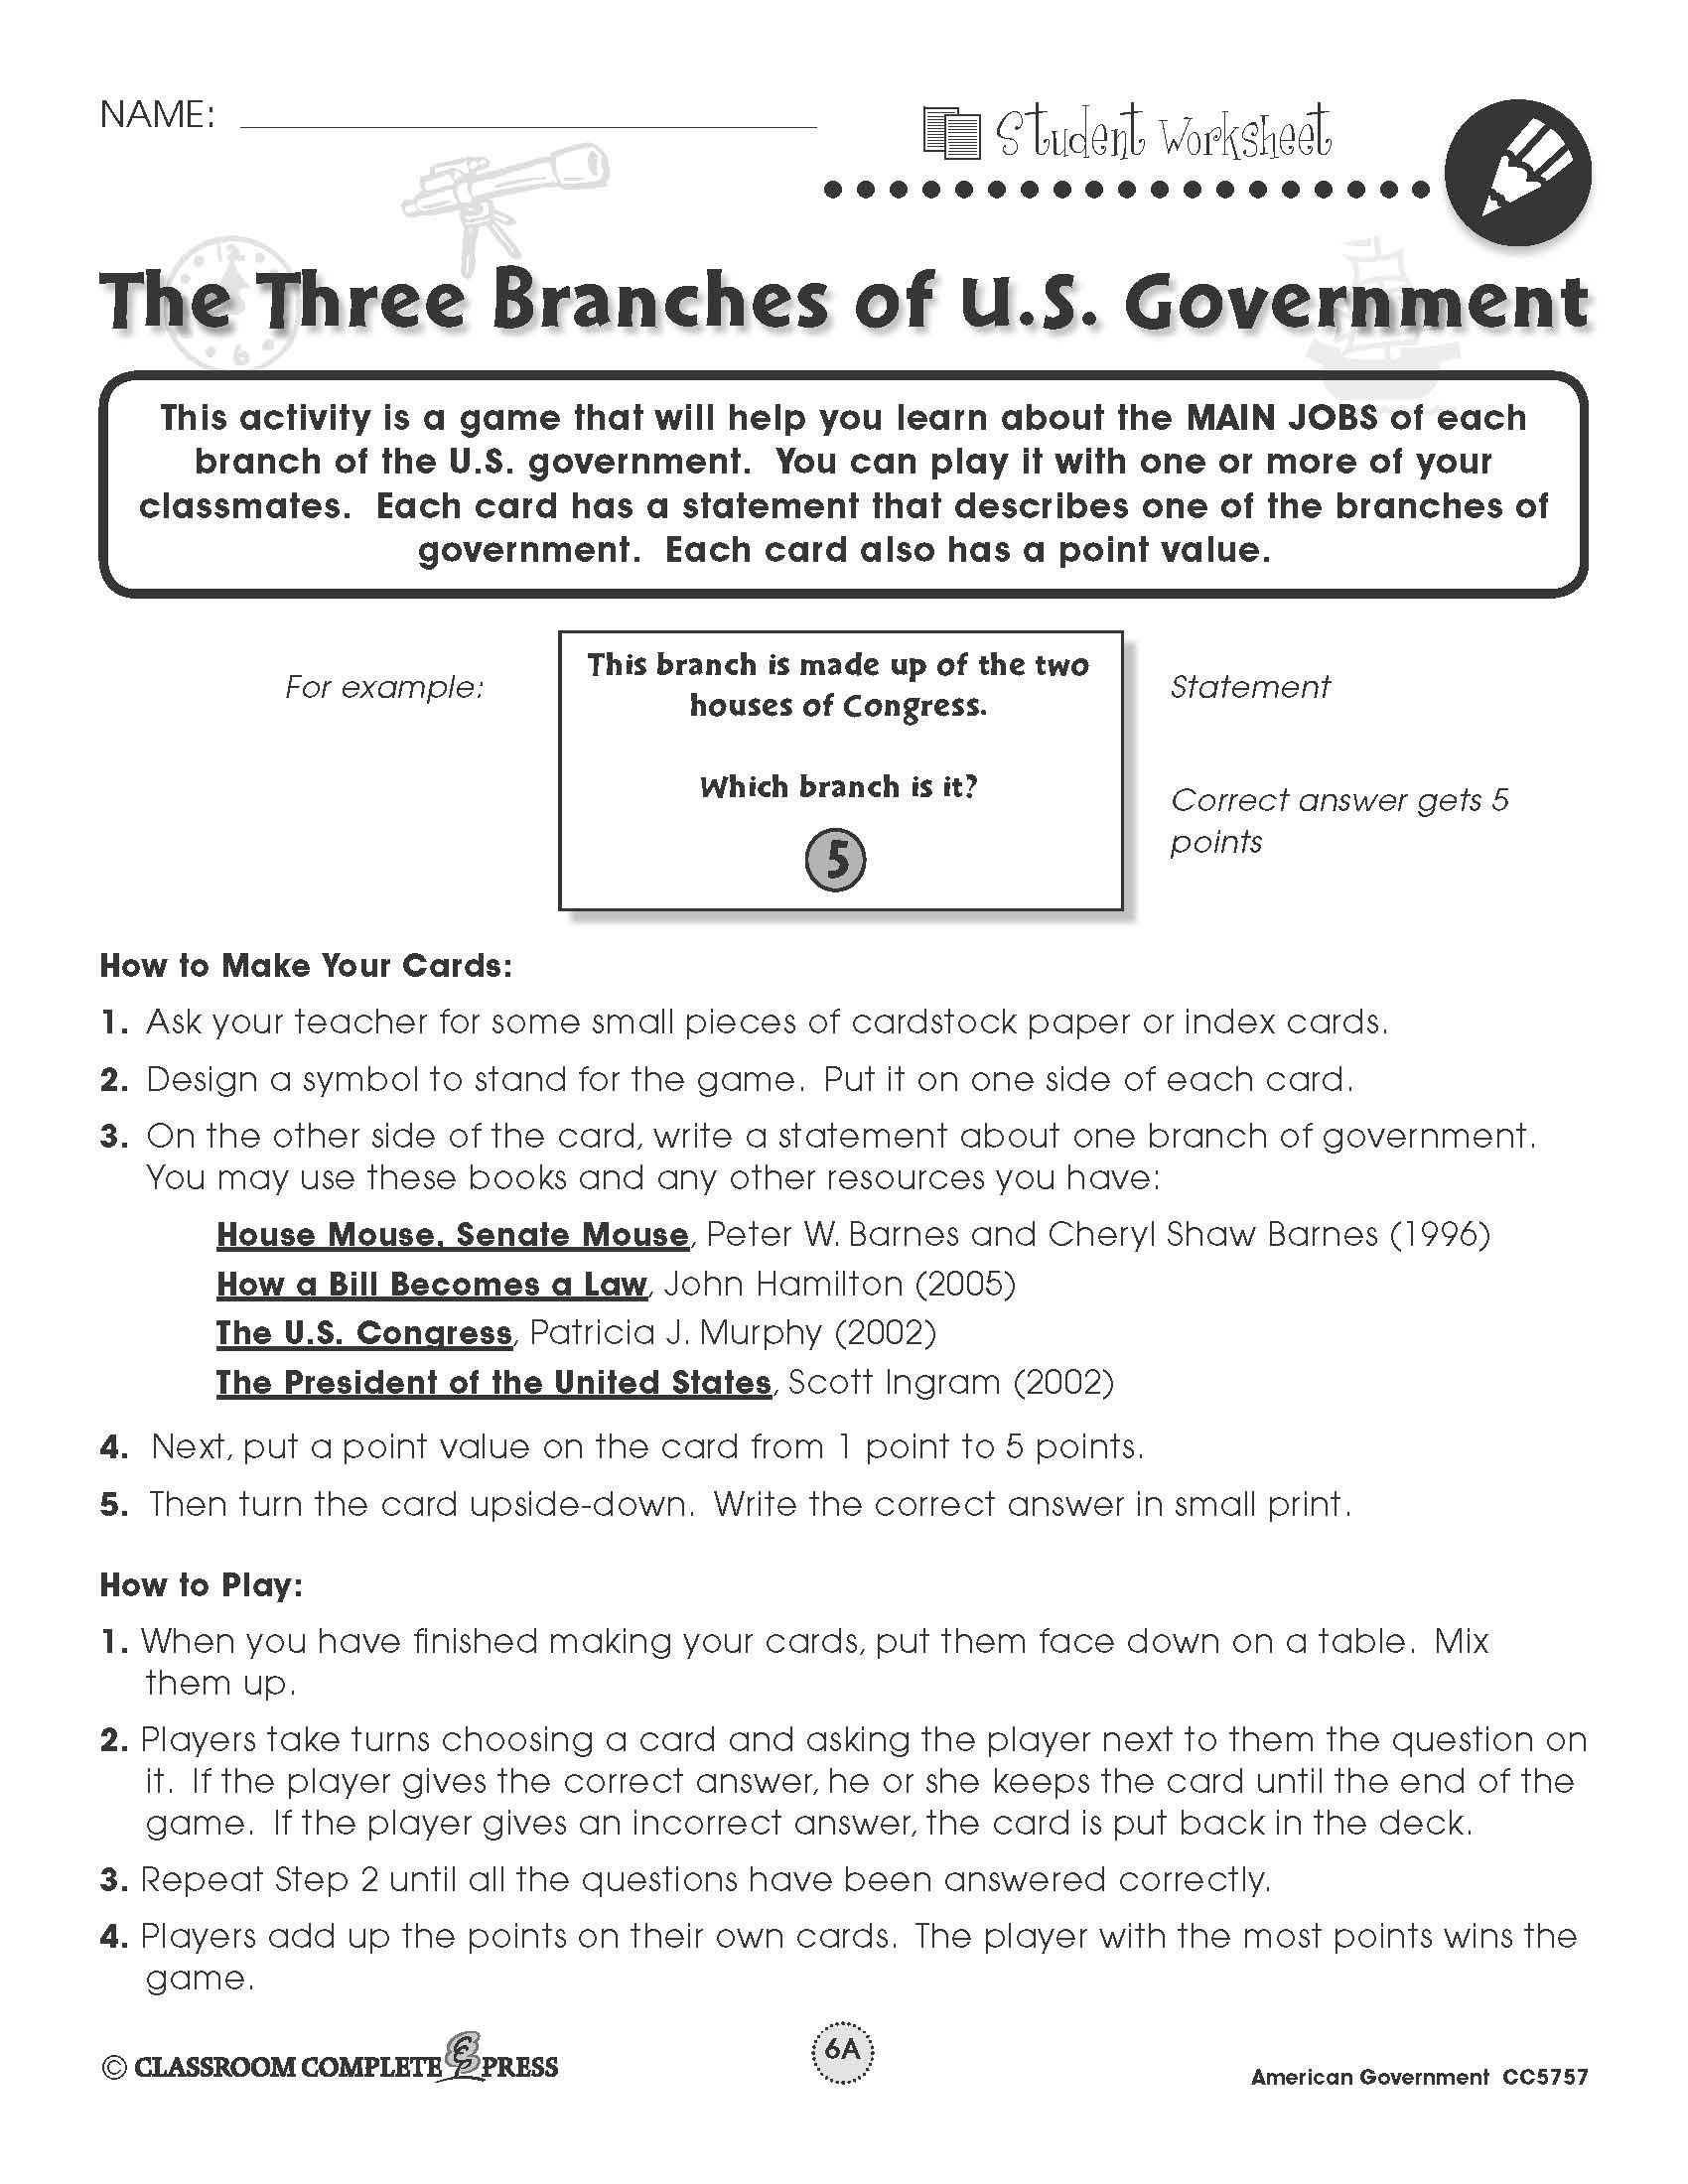 American Government Worksheet Answer Key